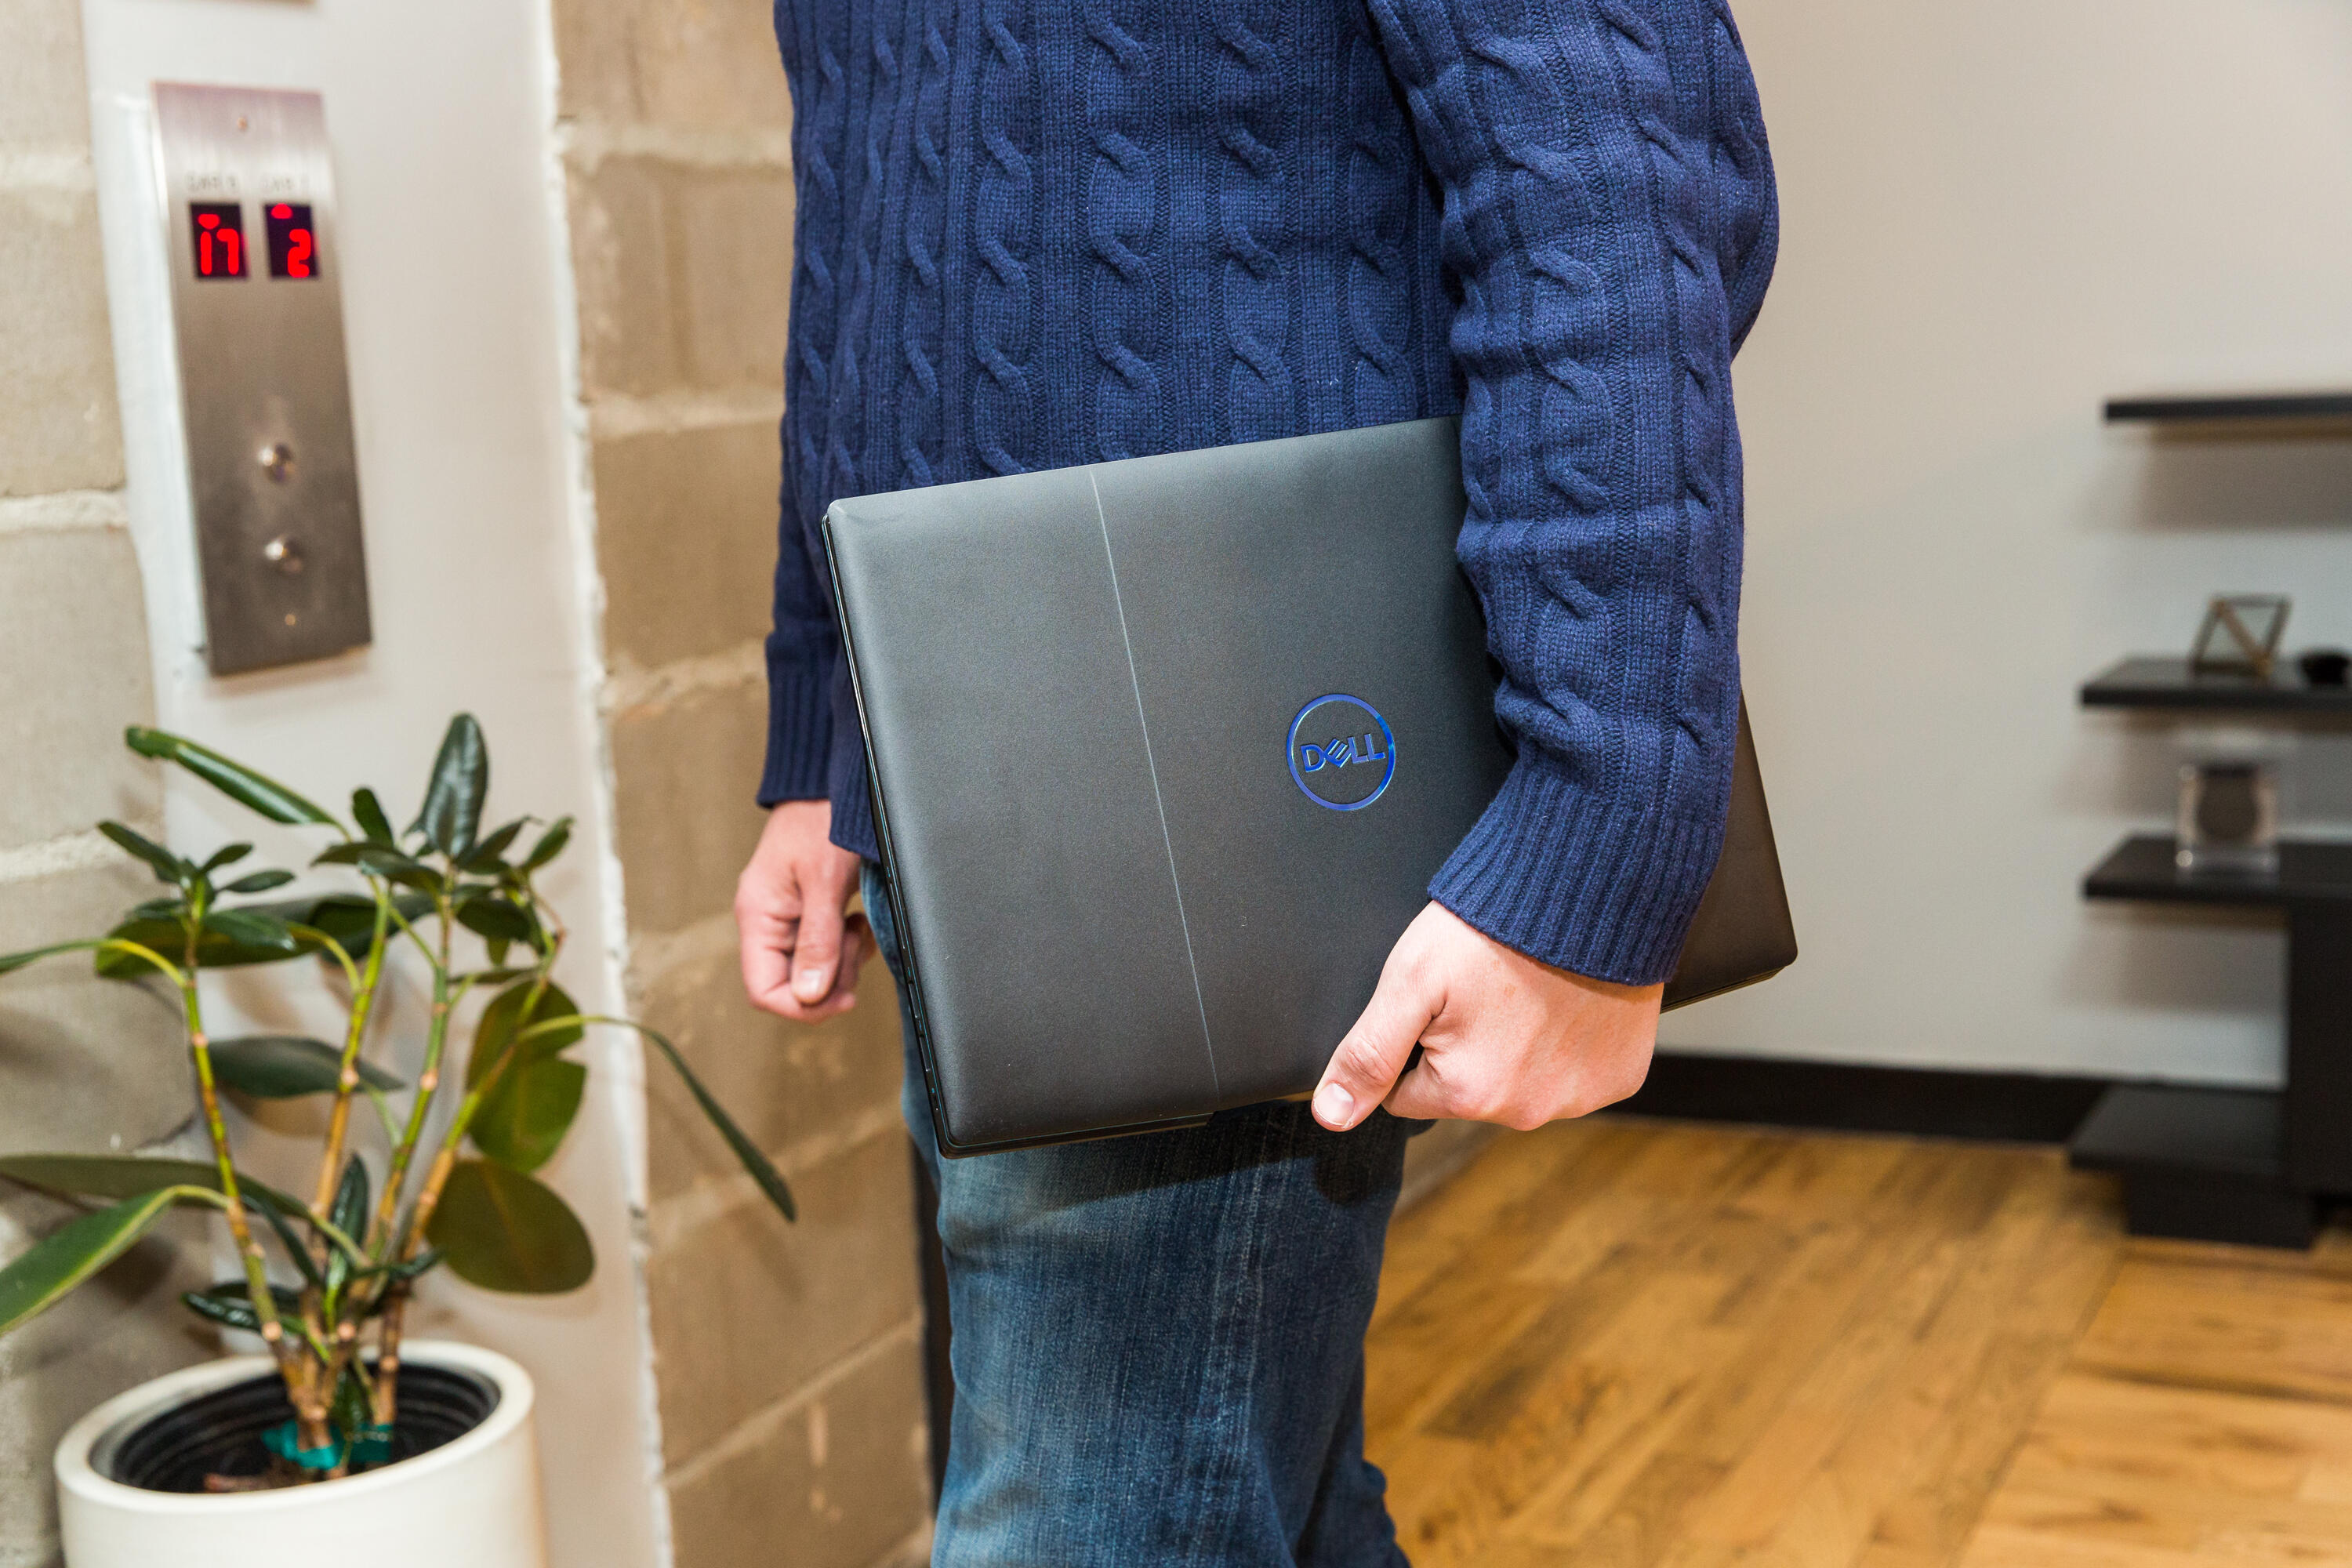 Dell G3 15 3590 gaming laptop